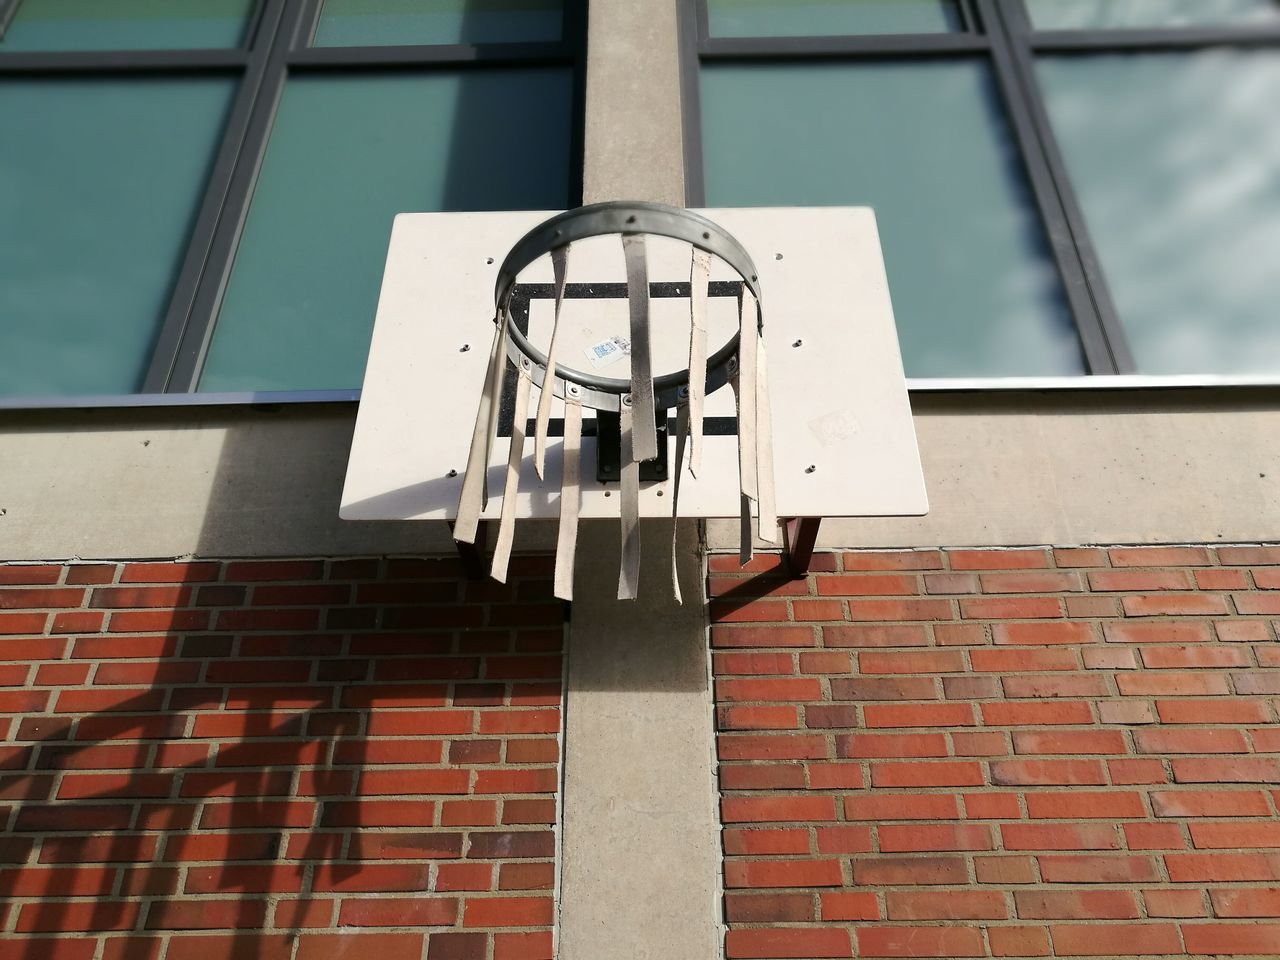 building exterior, architecture, built structure, low angle view, brick wall, no people, day, red, window, outdoors, basketball hoop